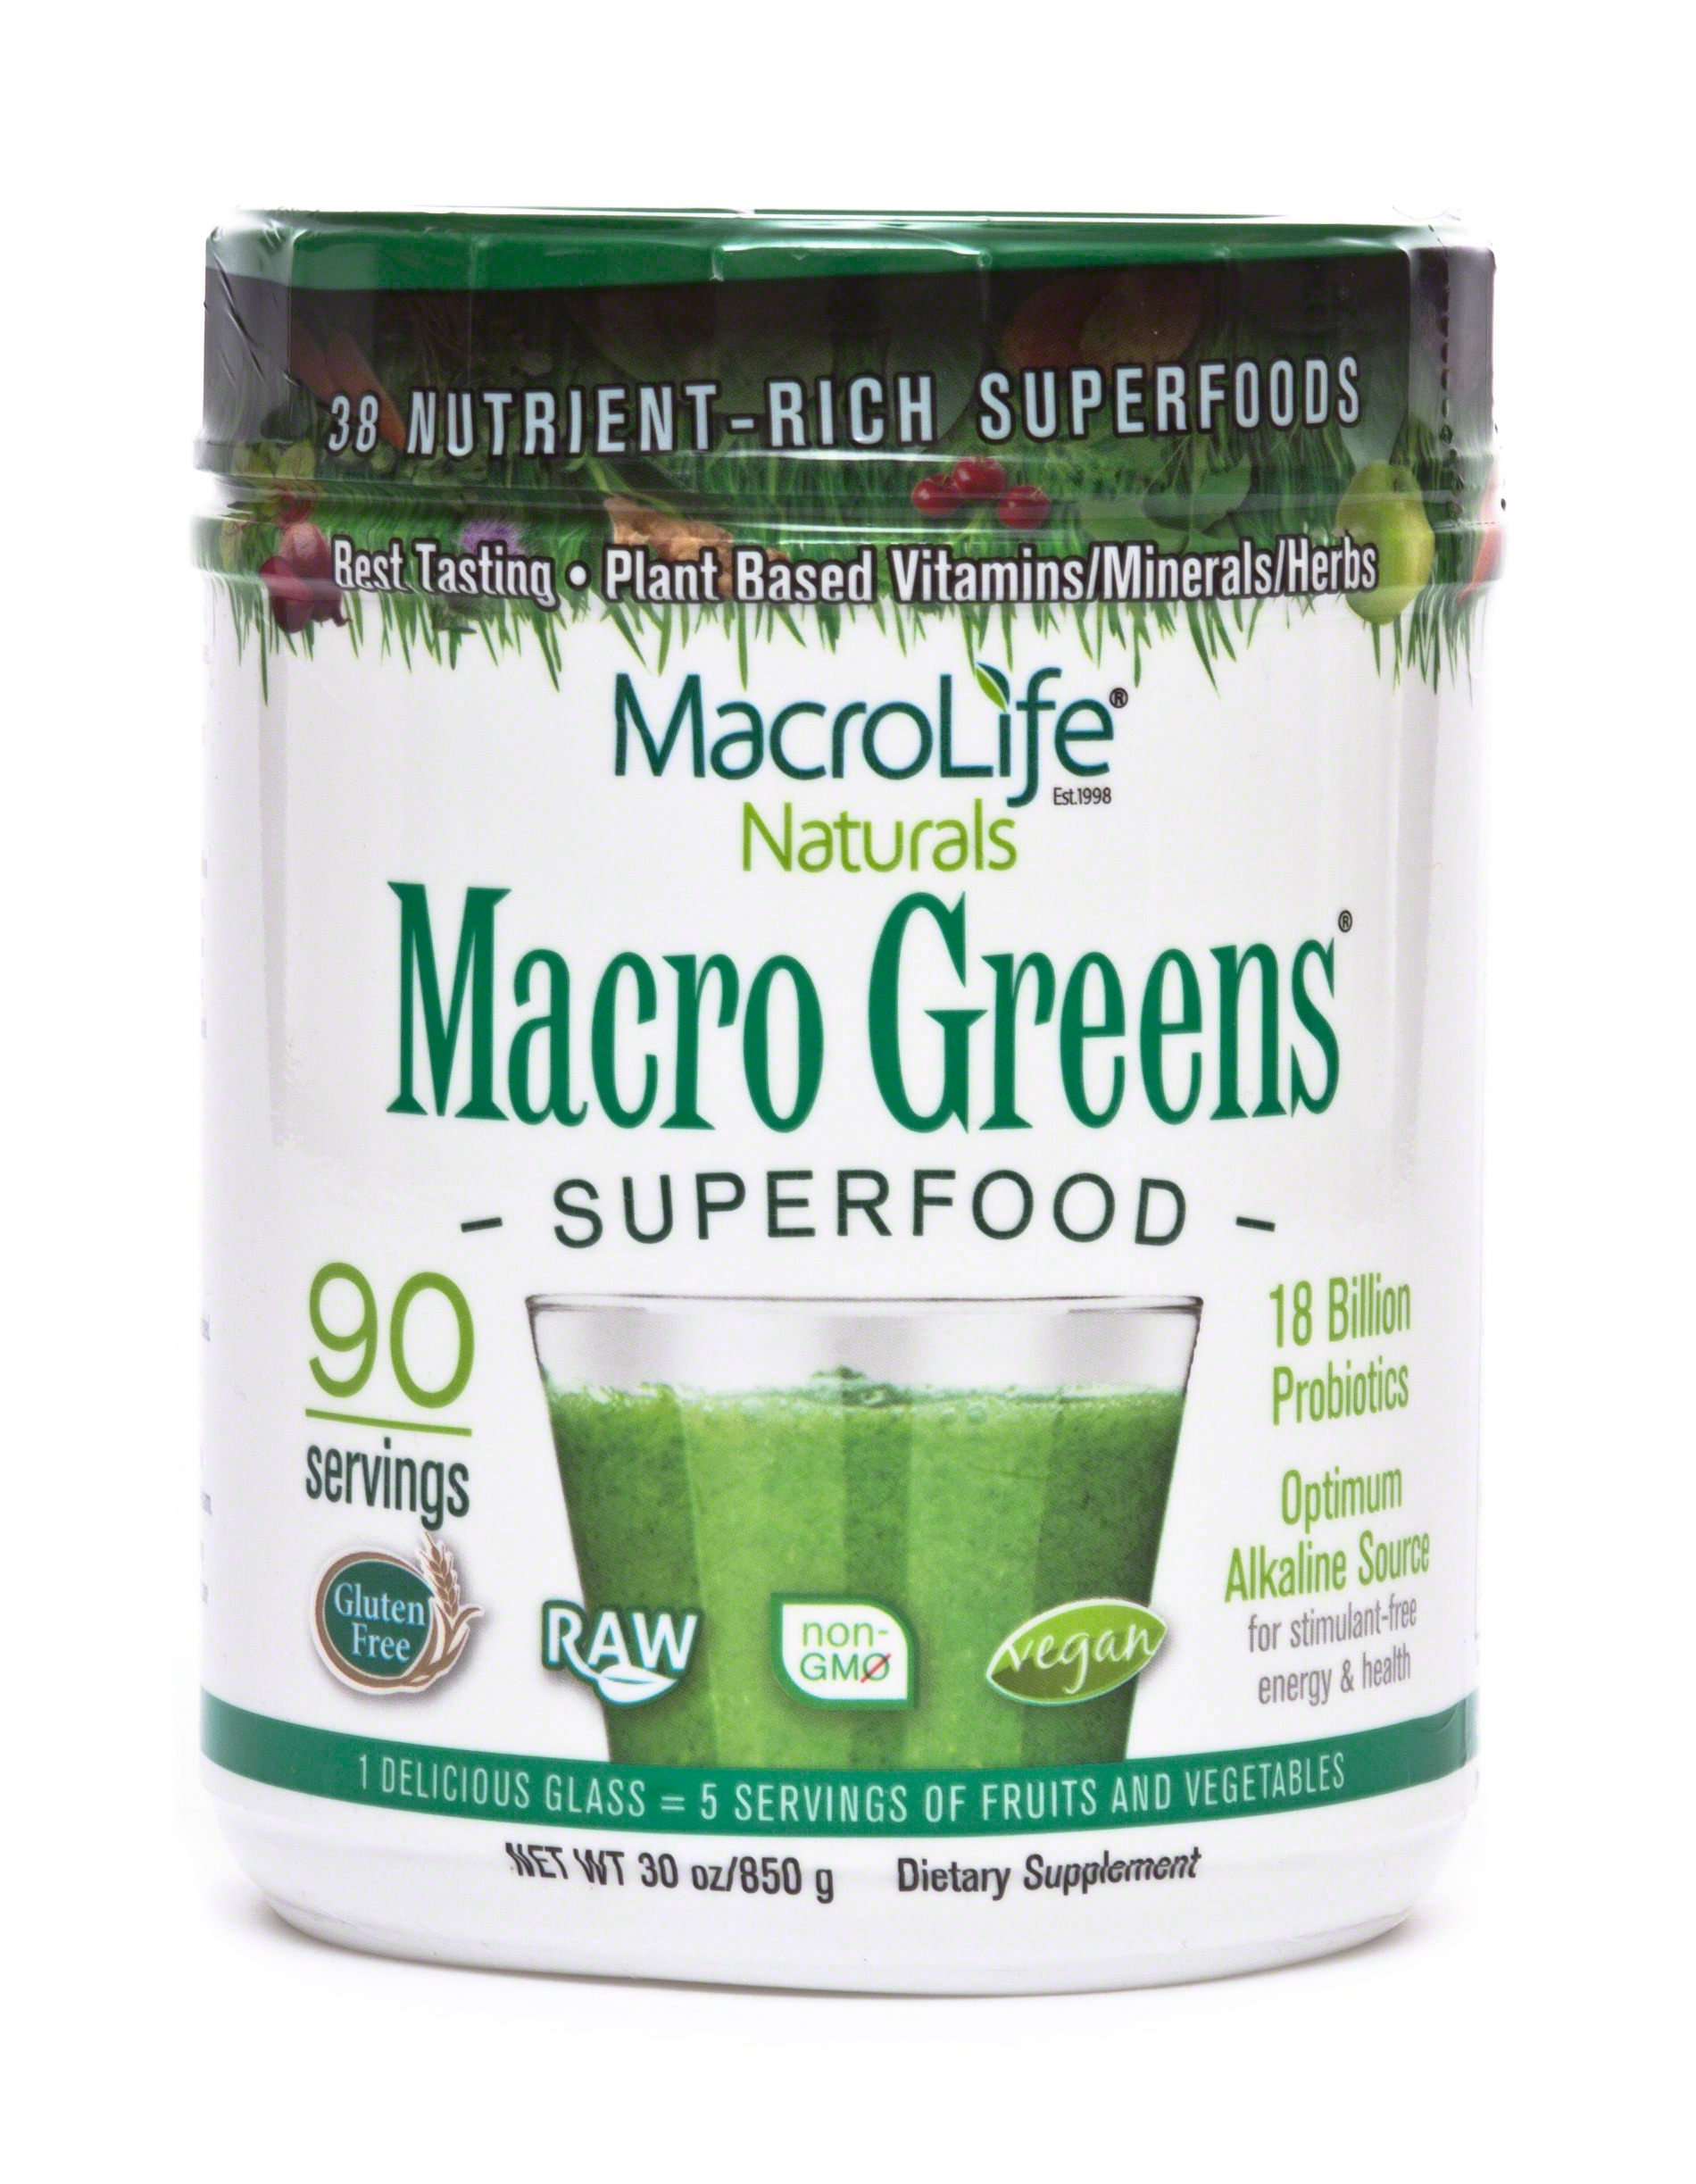 Macro Greens Superfood - 18 Billion Non-Dairy Probiotic Cultures - Raw Green Superfood With Concentrated Polyphenols - Certified Organic Barley Grass Powder - 5+ Servings Of Fruits & Vegetables by MacroLife Naturals